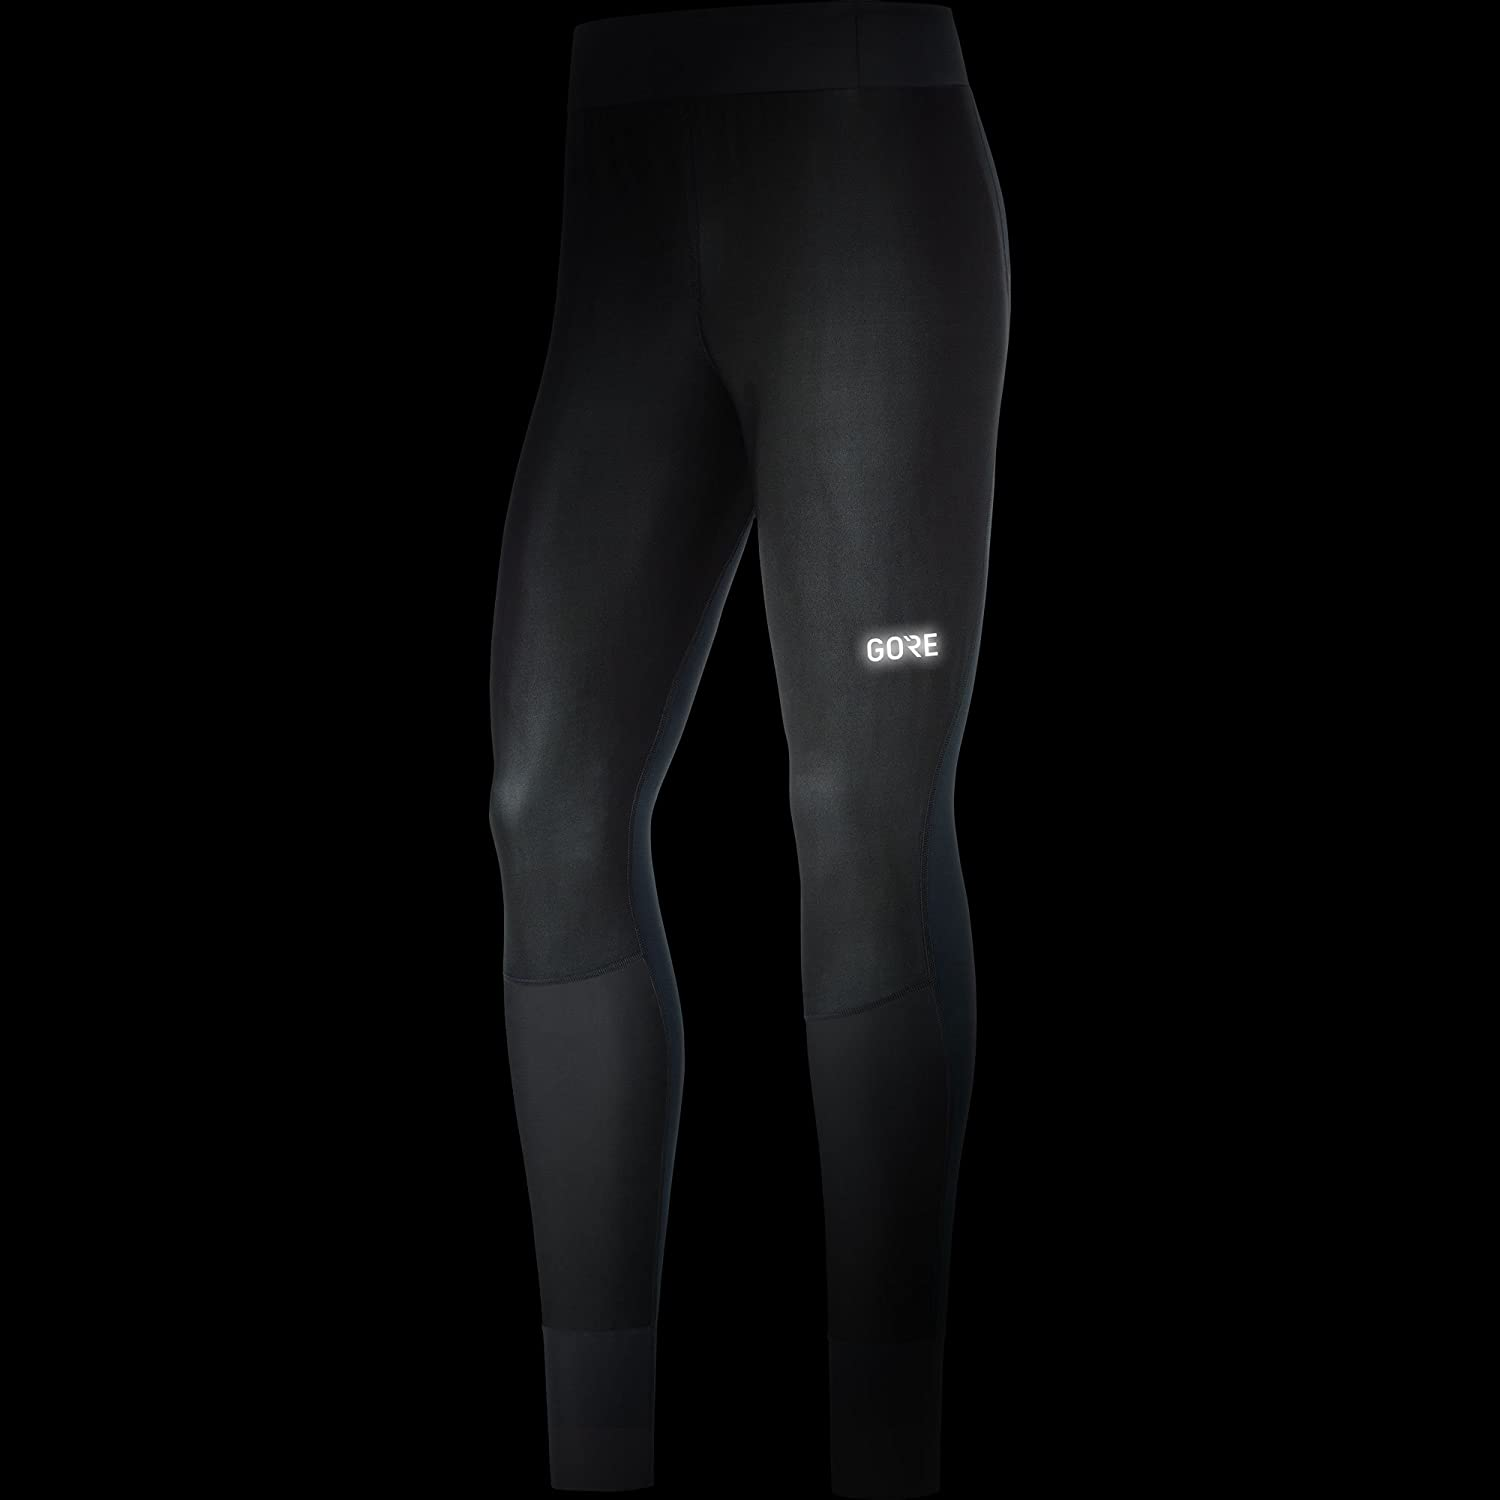 adb98e0560813 Gore Wear Men's X7 Partial Windstopper Skiing Tights - Black, XX-Large:  Amazon.co.uk: Sports & Outdoors